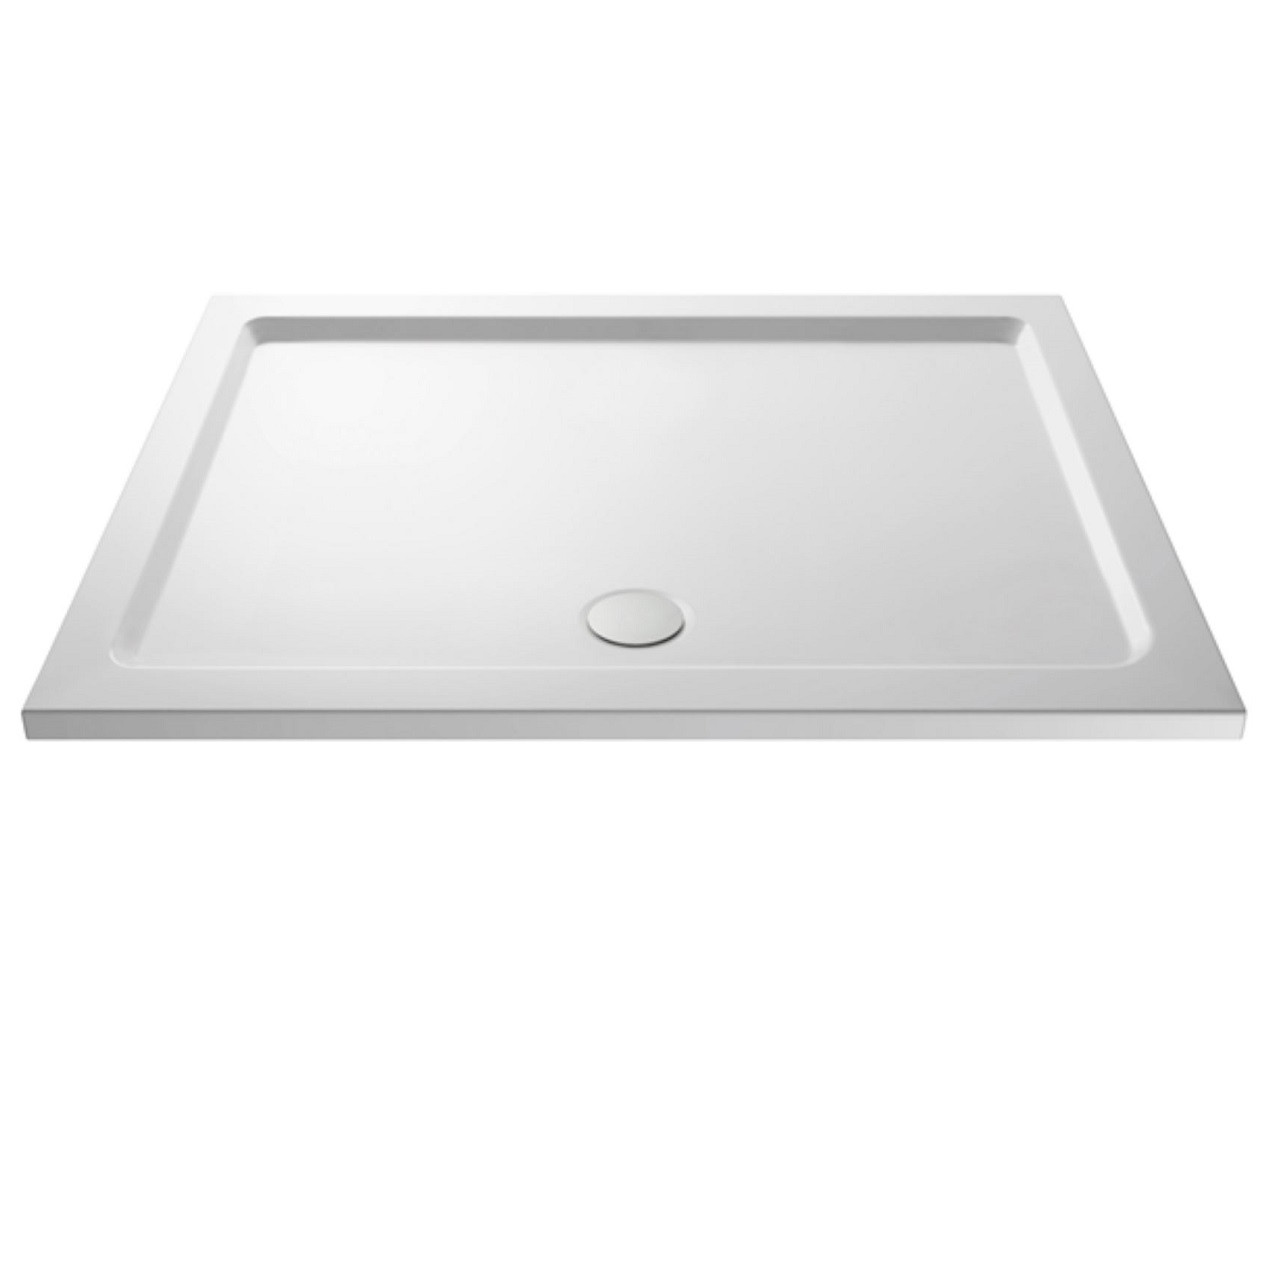 Premier White Rectangular Shower Tray 1500mm x 760mm - NTP042